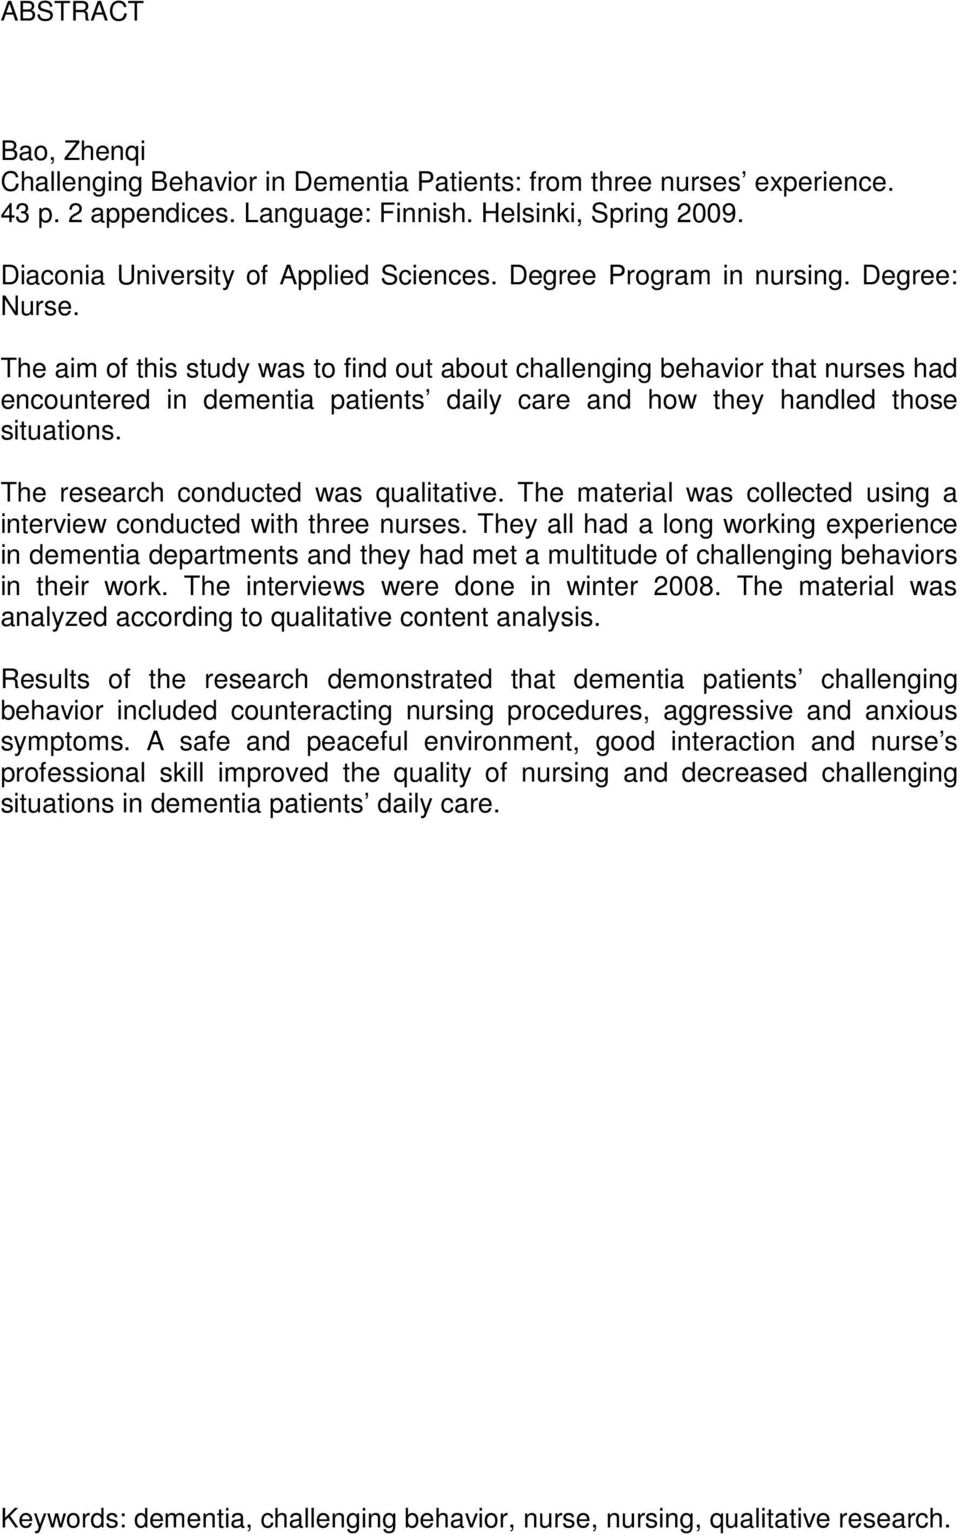 The aim of this study was to find out about challenging behavior that nurses had encountered in dementia patients daily care and how they handled those situations.